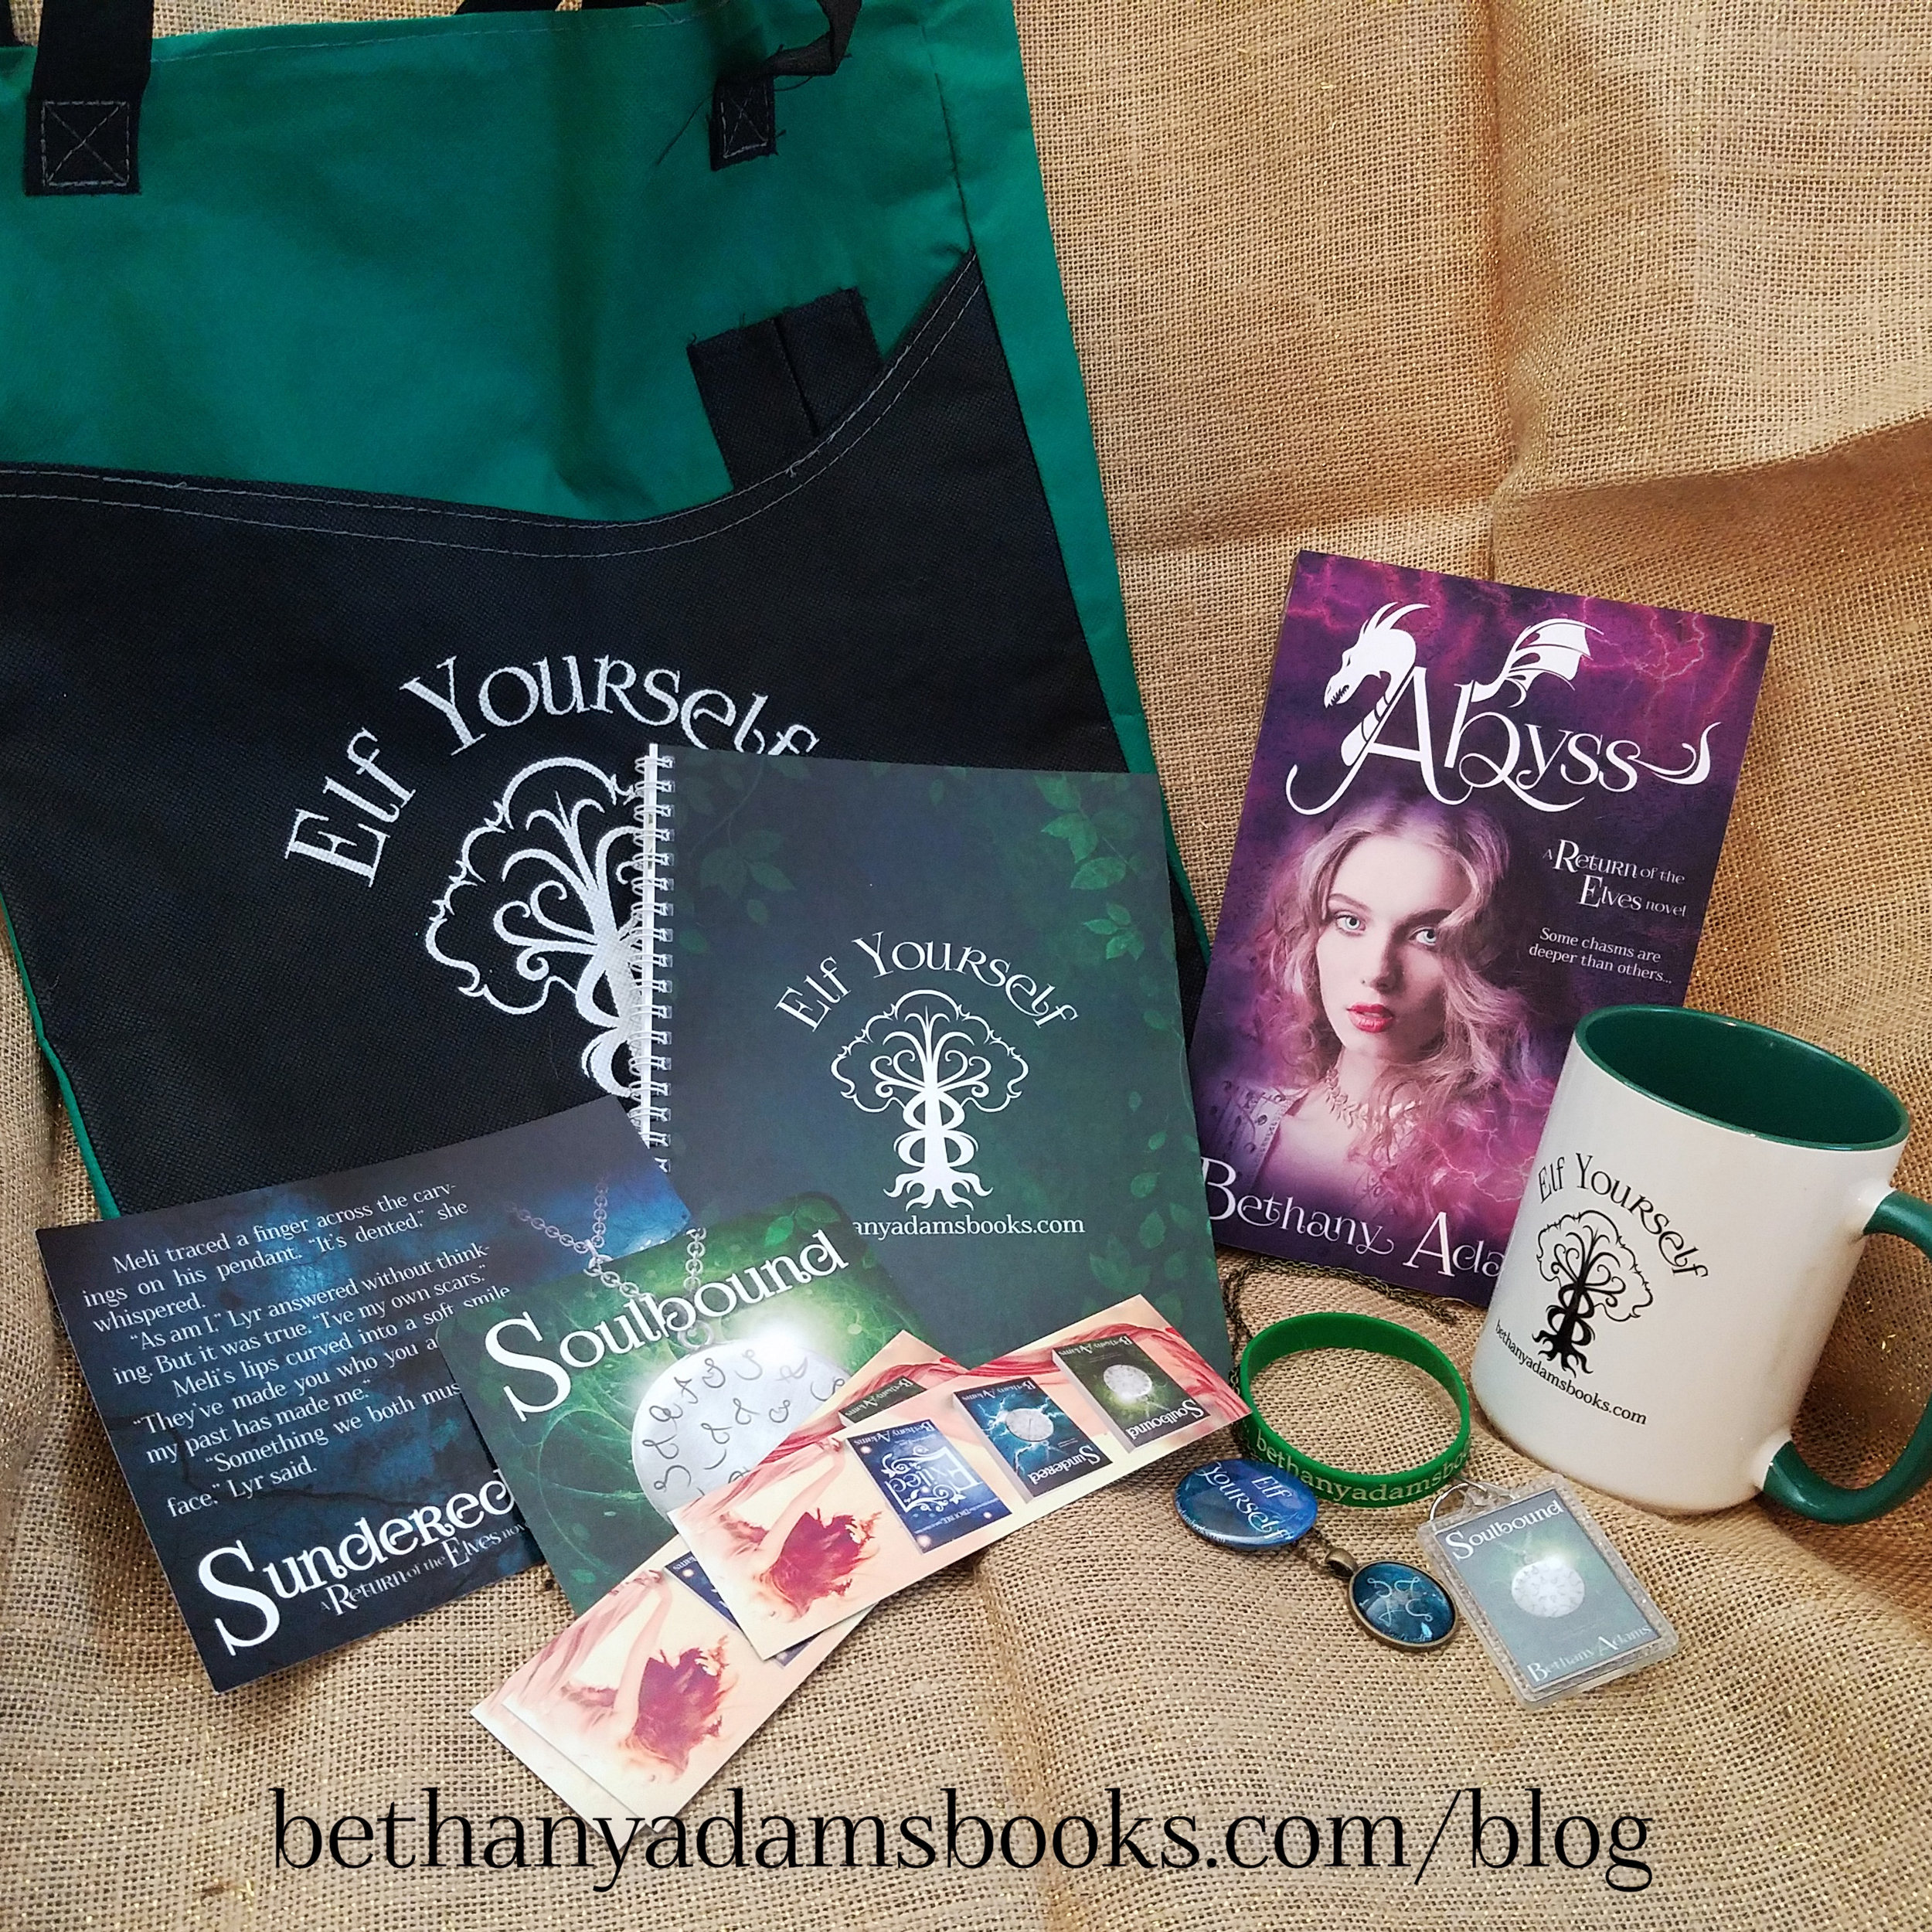 Swag Pack includes: Signed print proof of Abyss, Elf Yourself reusable bag, coffee cup, journal, handmade necklace, and assorted other swag.